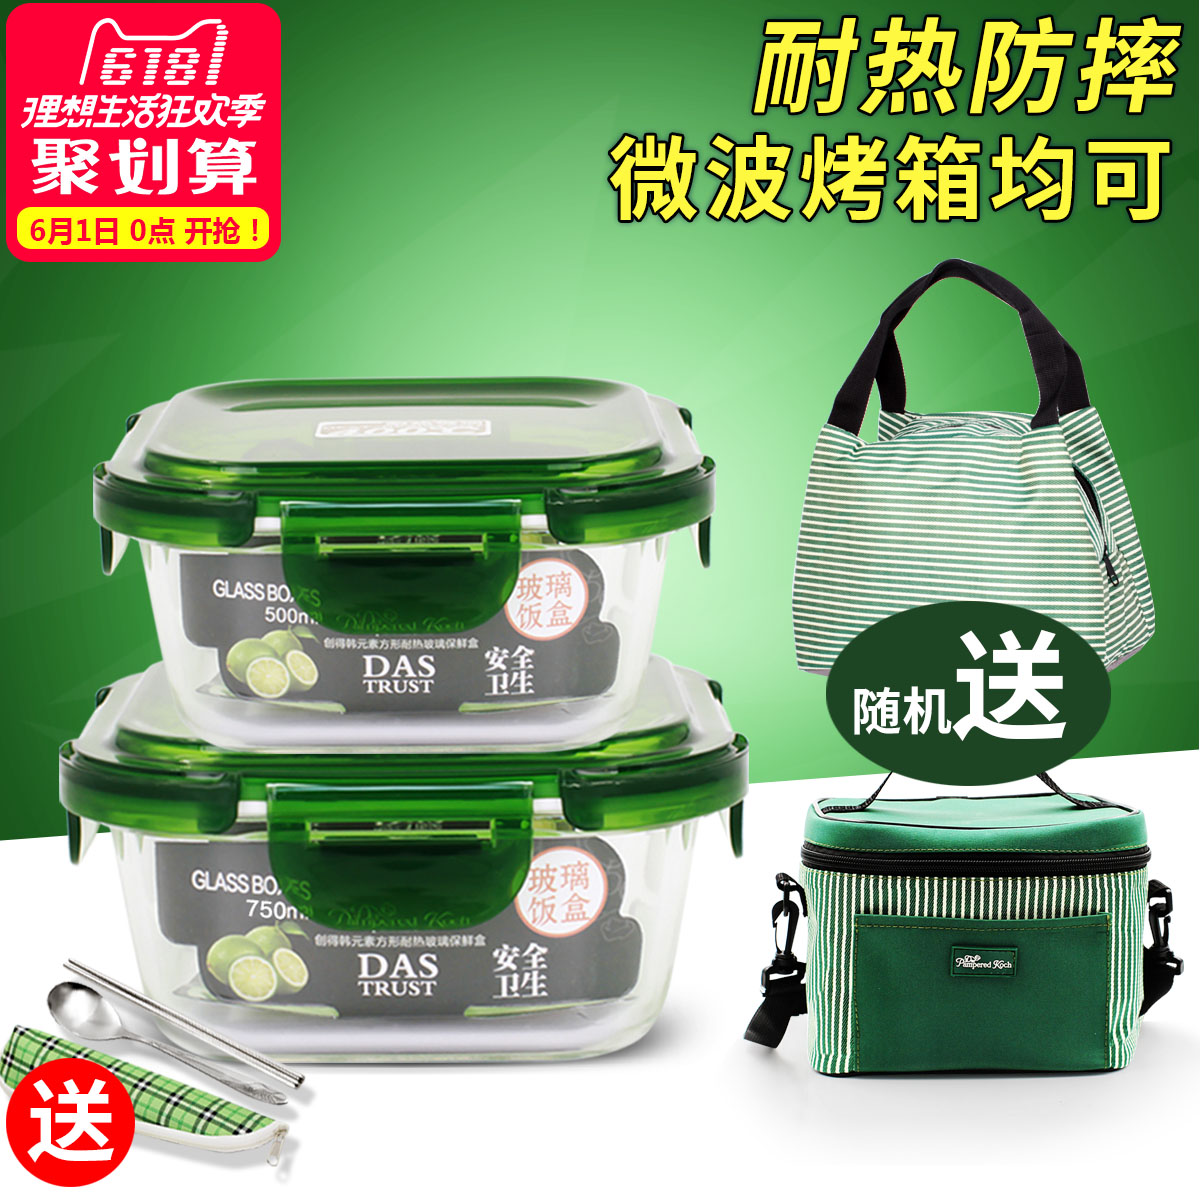 Create heat-resistant glass lunch box microwave special lunch box refrigerator storage fruit storage box sealed bowl set